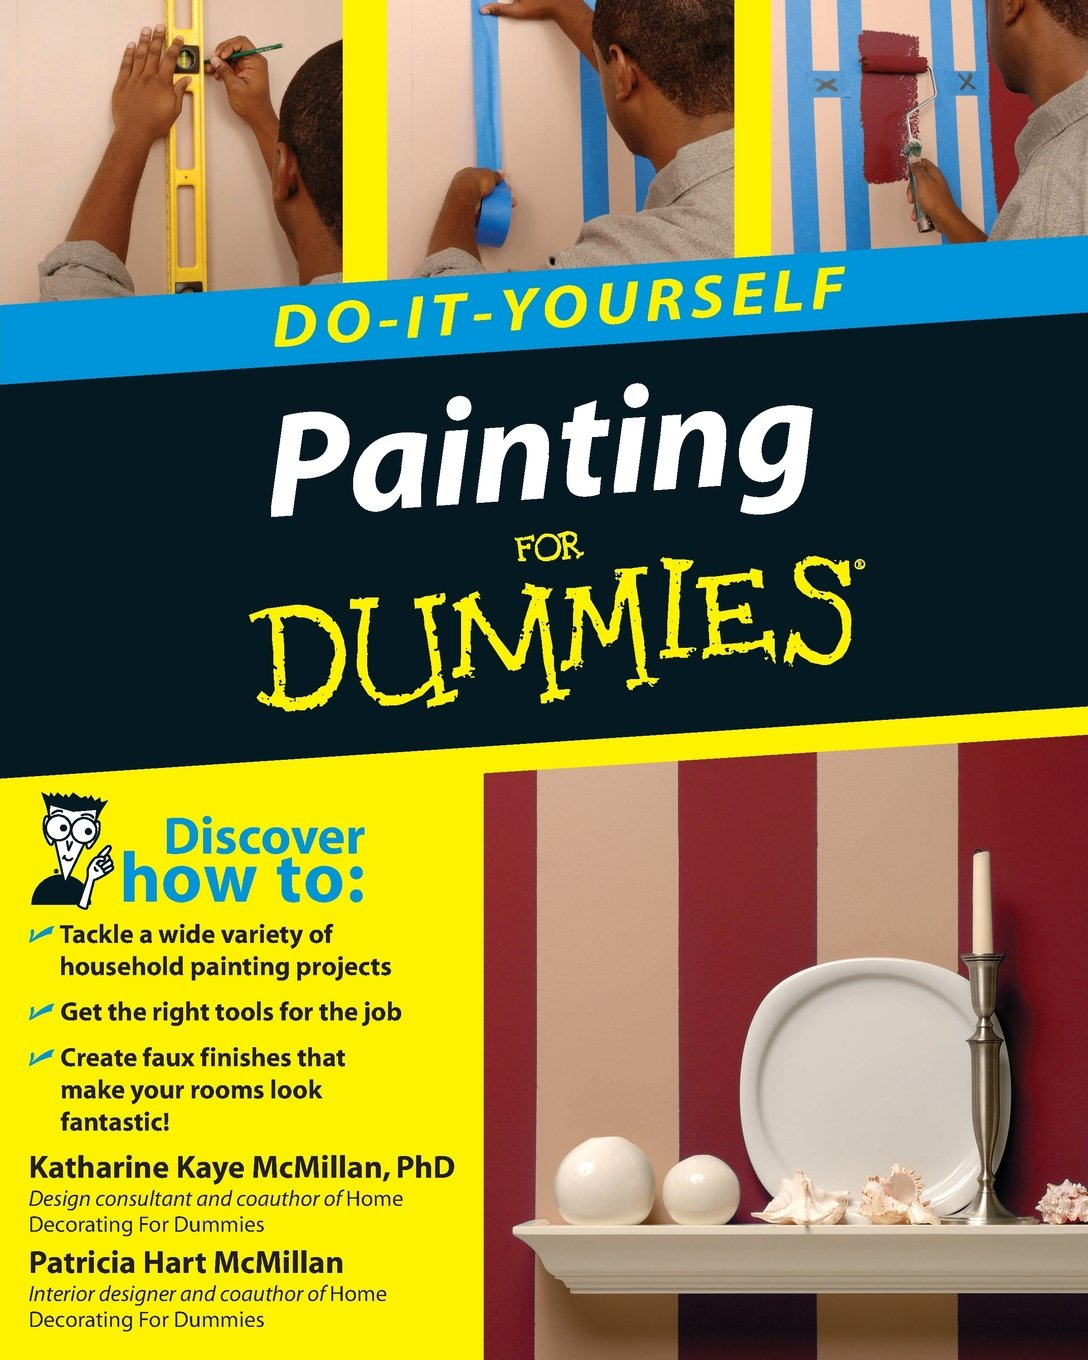 Painting do it yourself for dummies katharine kaye mcmillan painting do it yourself for dummies katharine kaye mcmillan patricia hart mcmillan 9780470175330 amazon books solutioingenieria Images